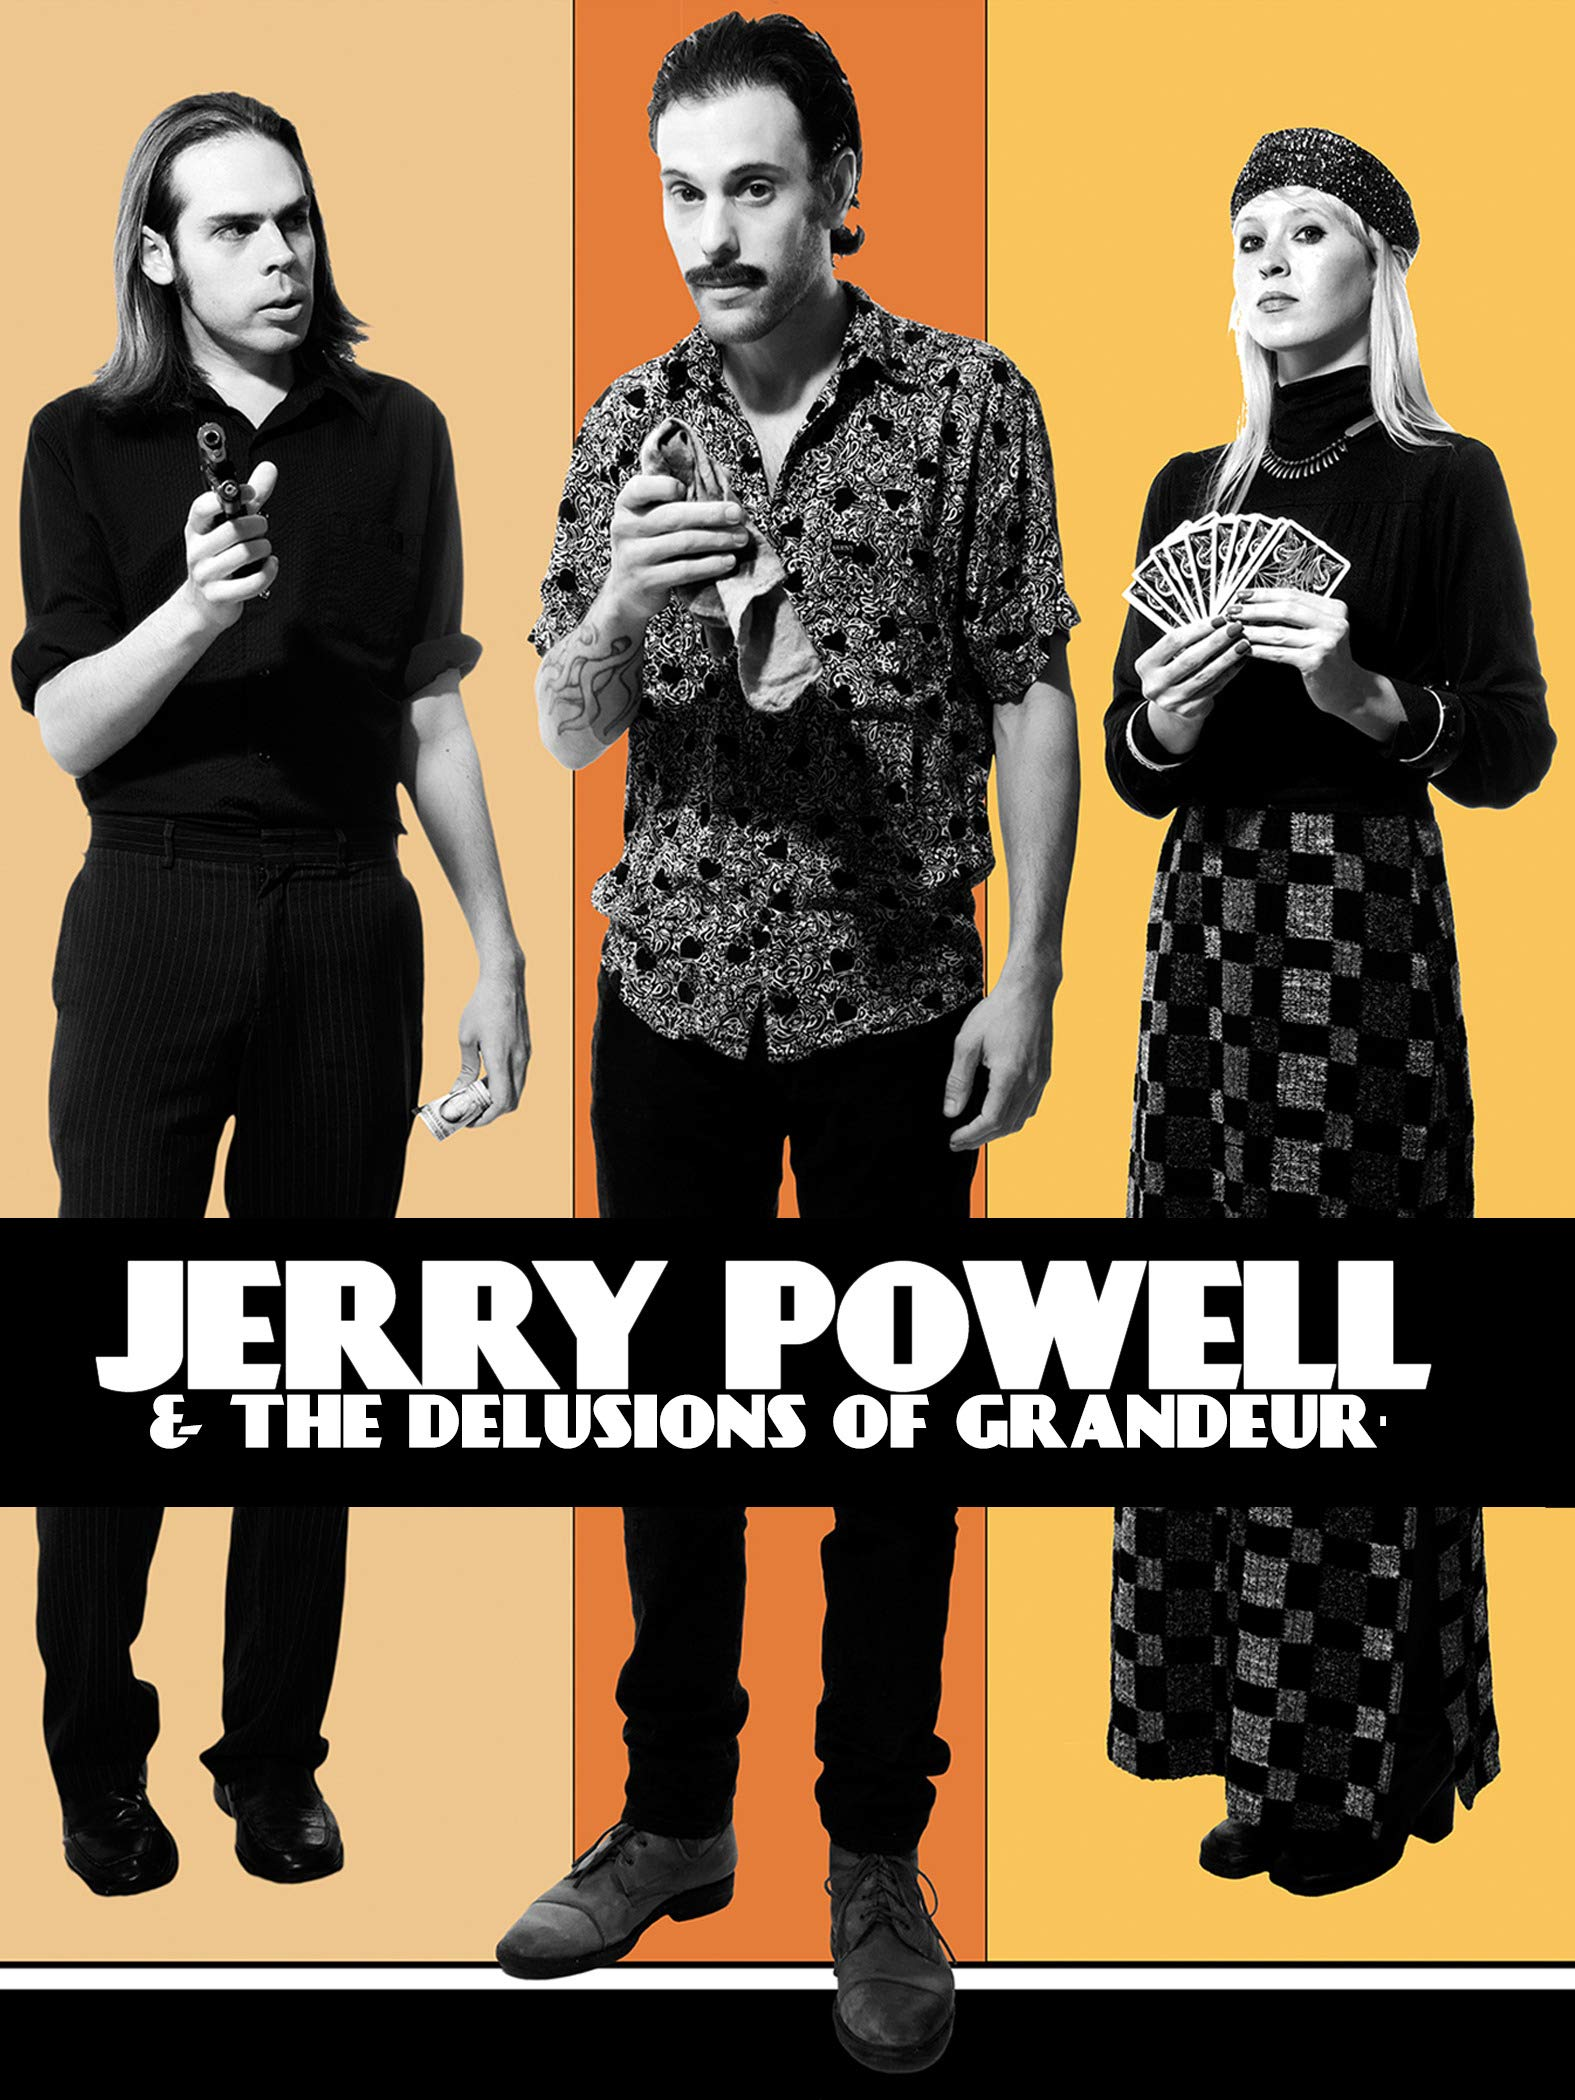 Jerry Powell & the Delusions of Grandeur on Amazon Prime Video UK